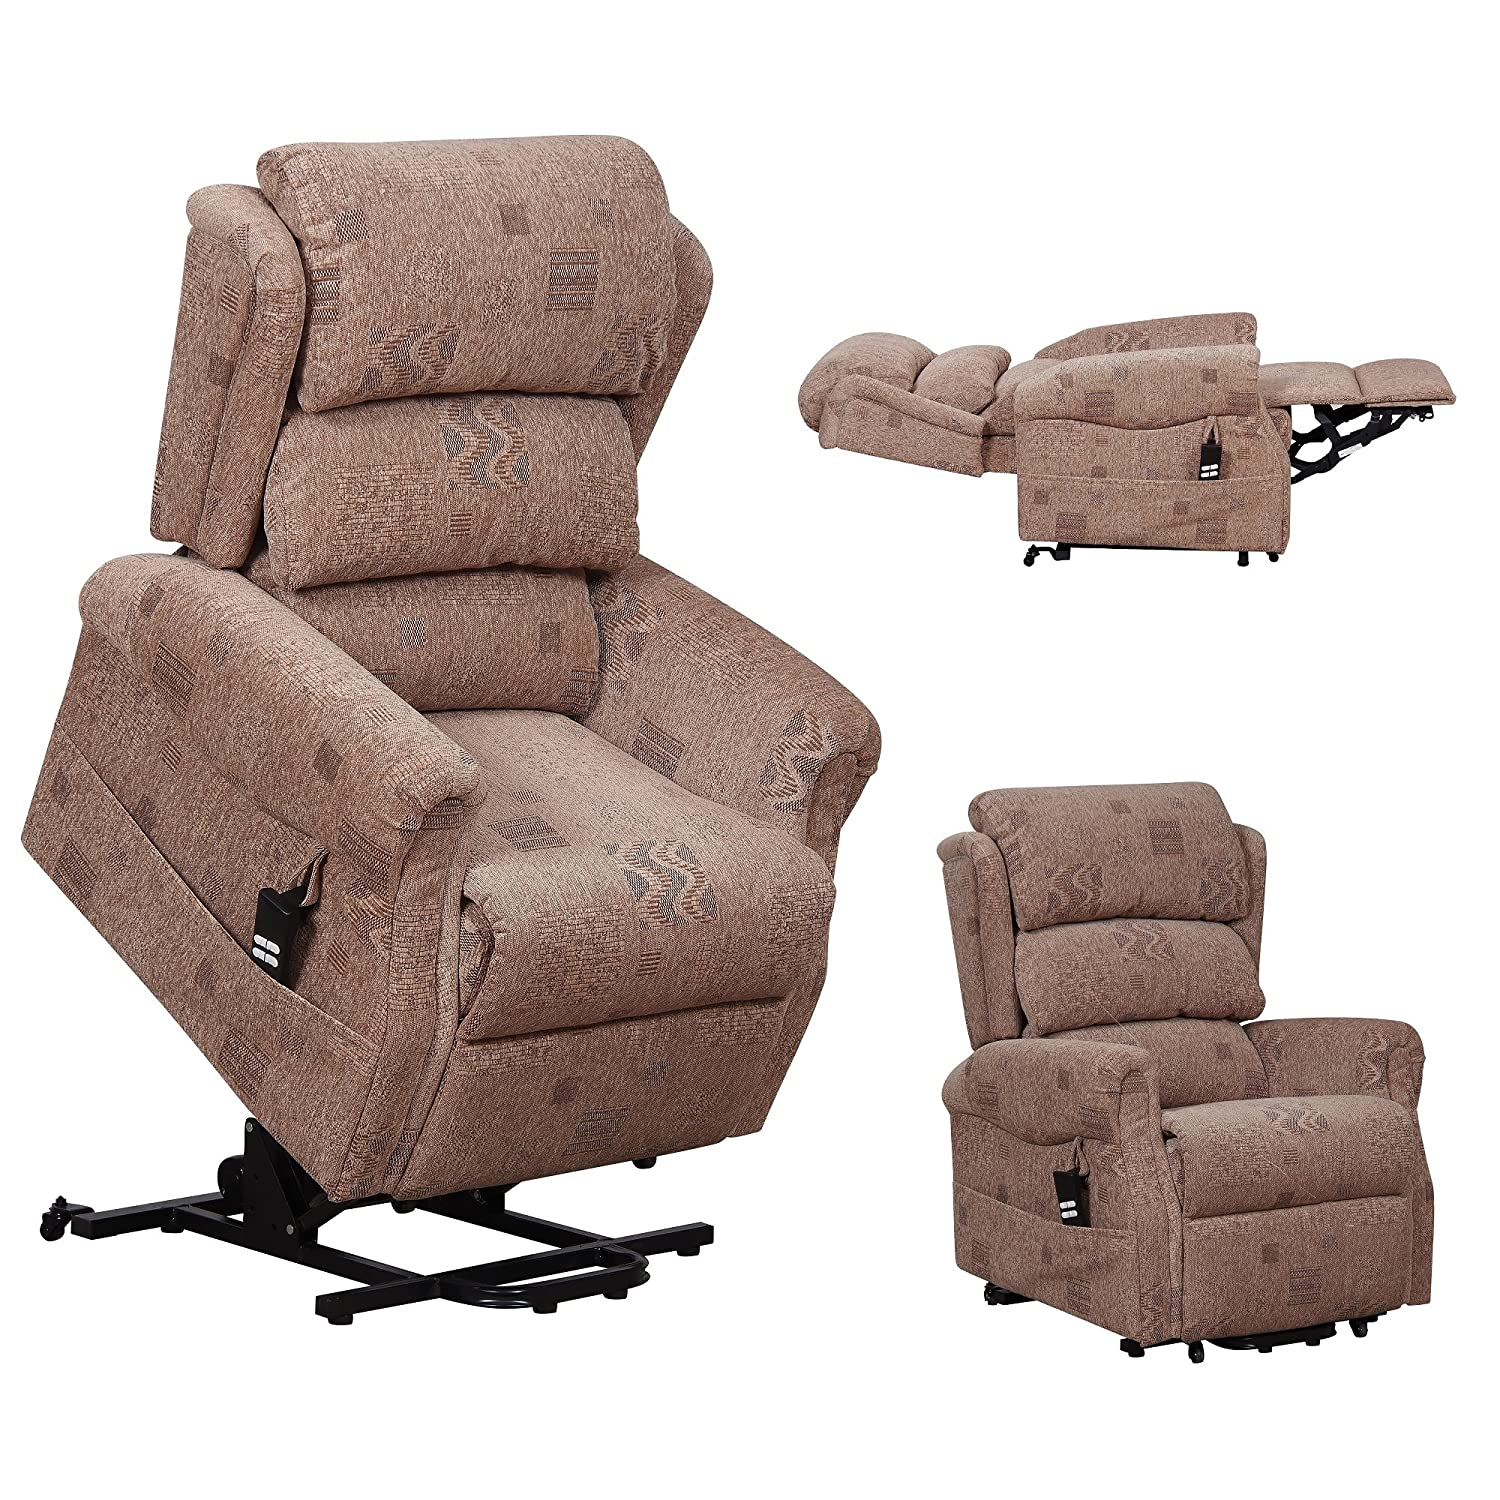 lift restwell chairs recliner healthcareaids pay chair floral does sasha for medicare riser